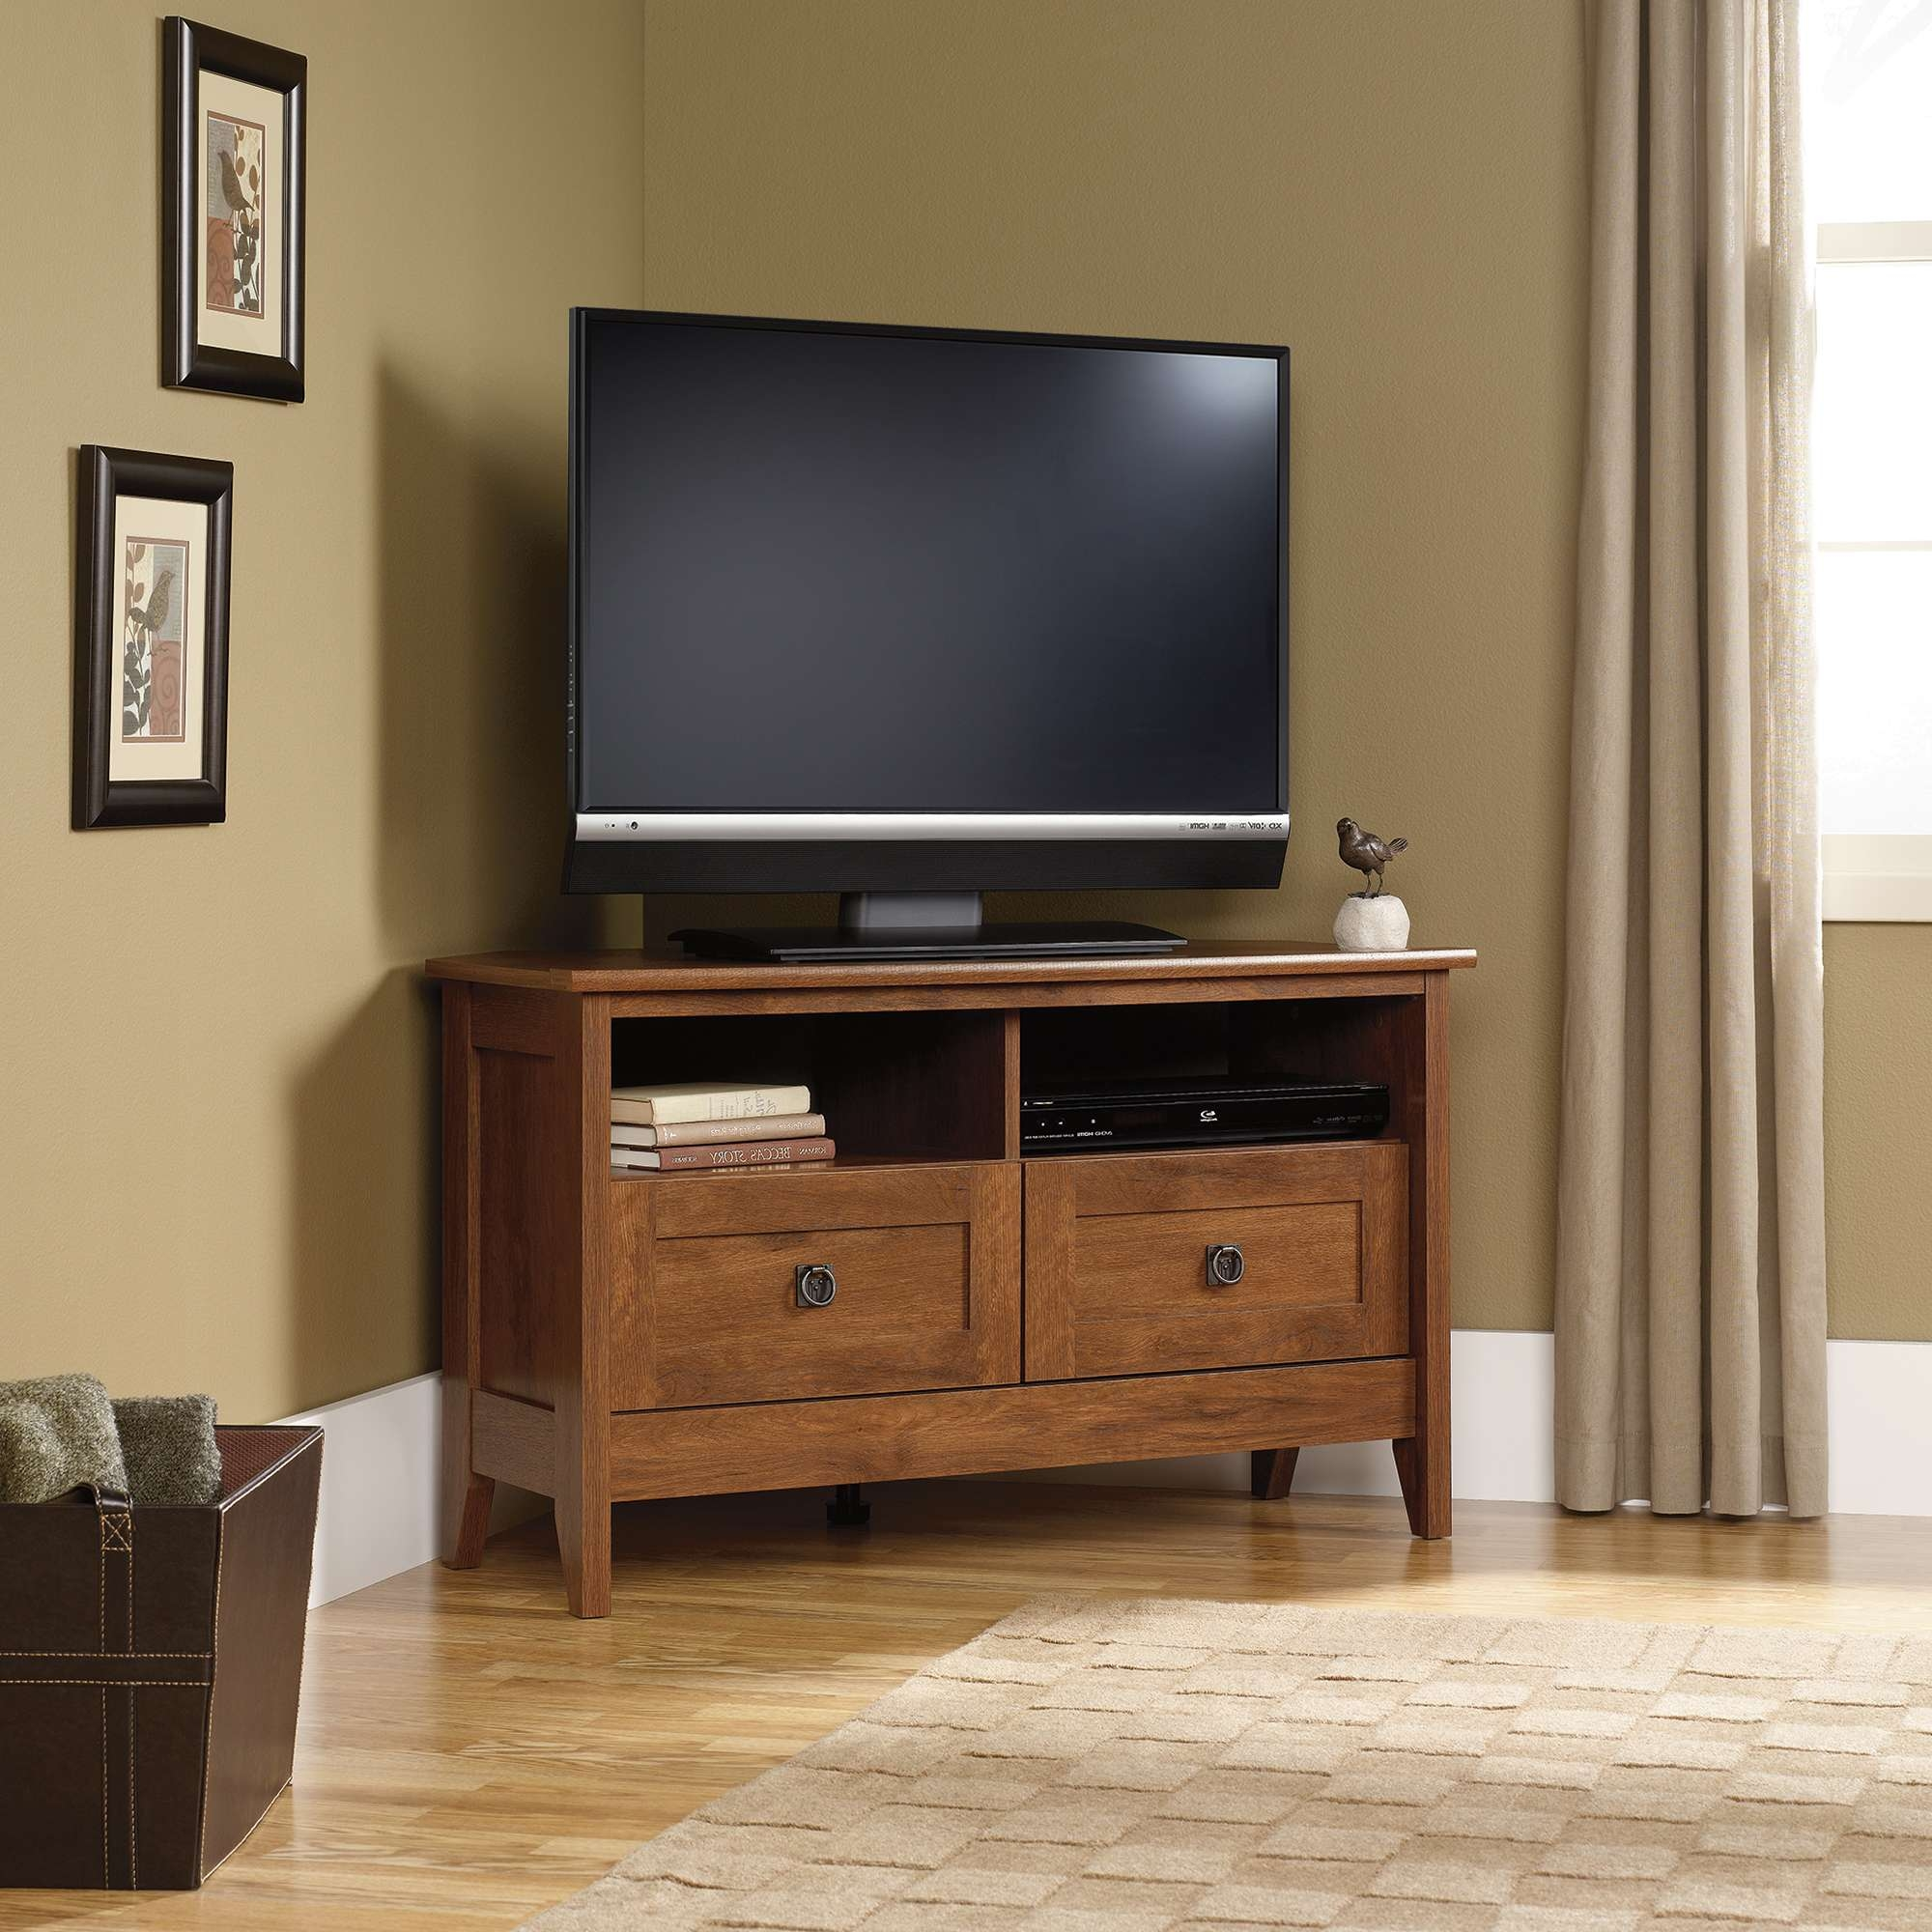 Sauder Select | Corner Tv Stand | 410627 | Sauder For Tv Stands For Corners (View 14 of 15)